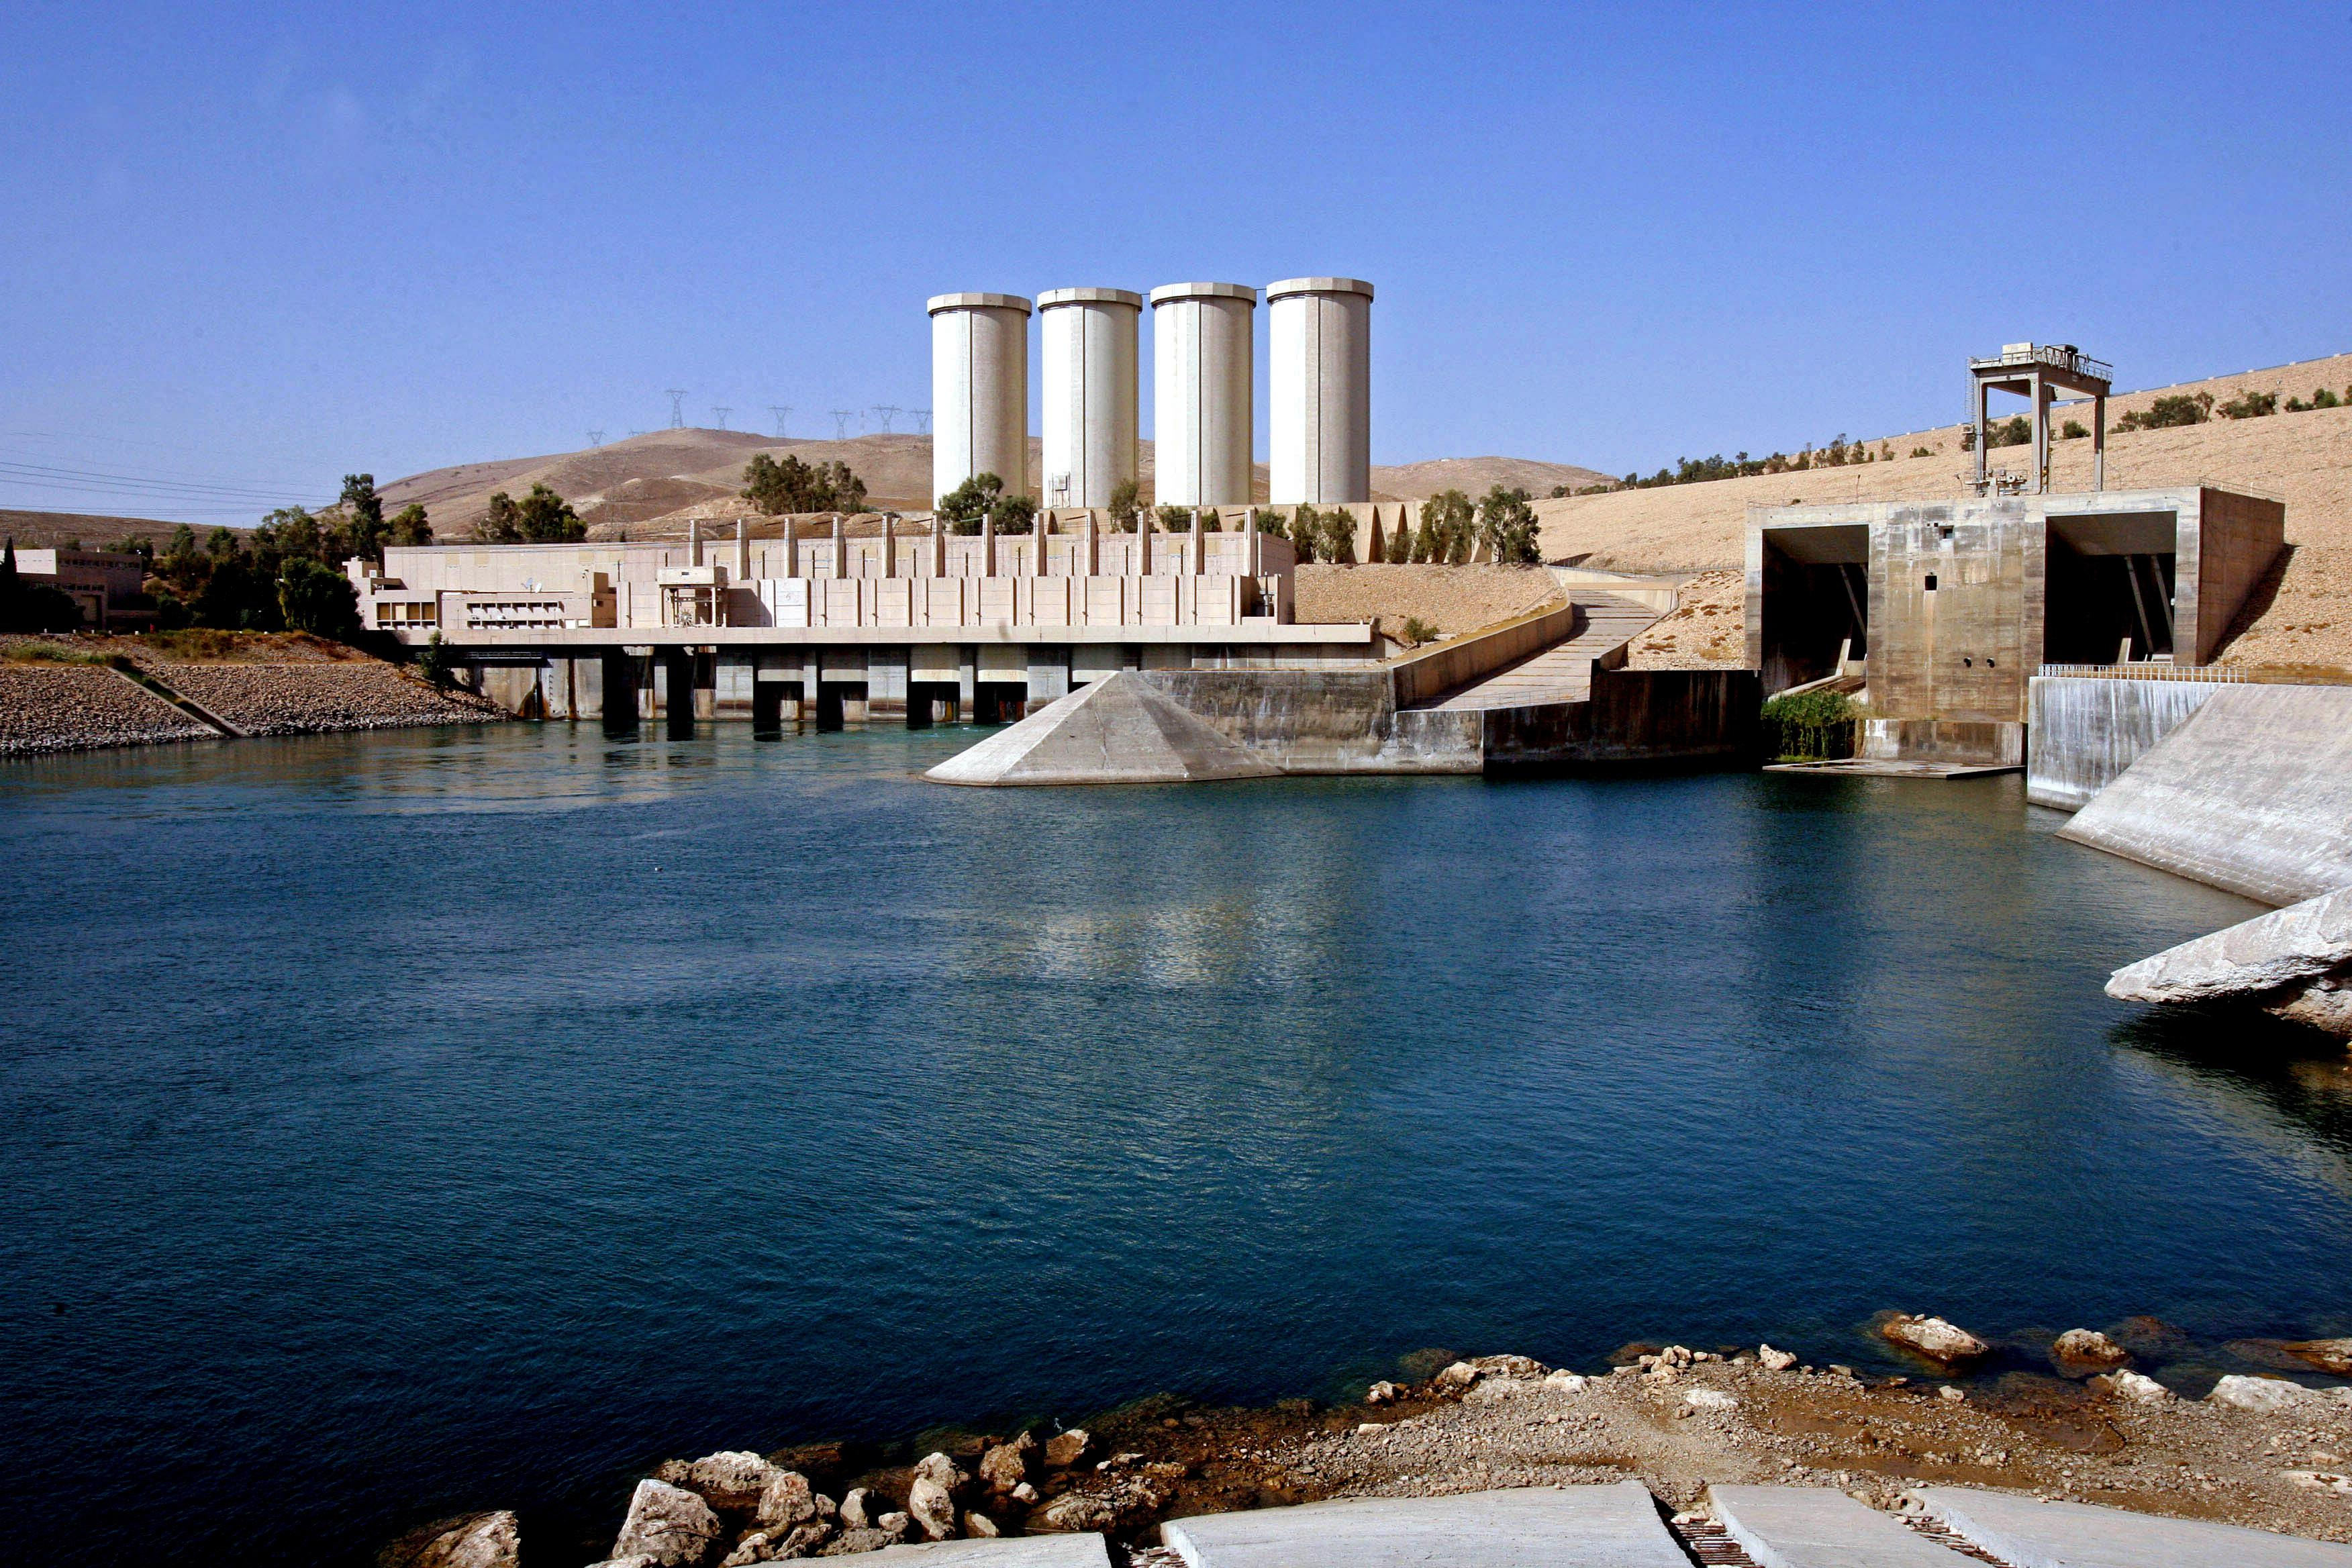 US Army study: Iraq's Mosul dam at 'higher risk' of failure